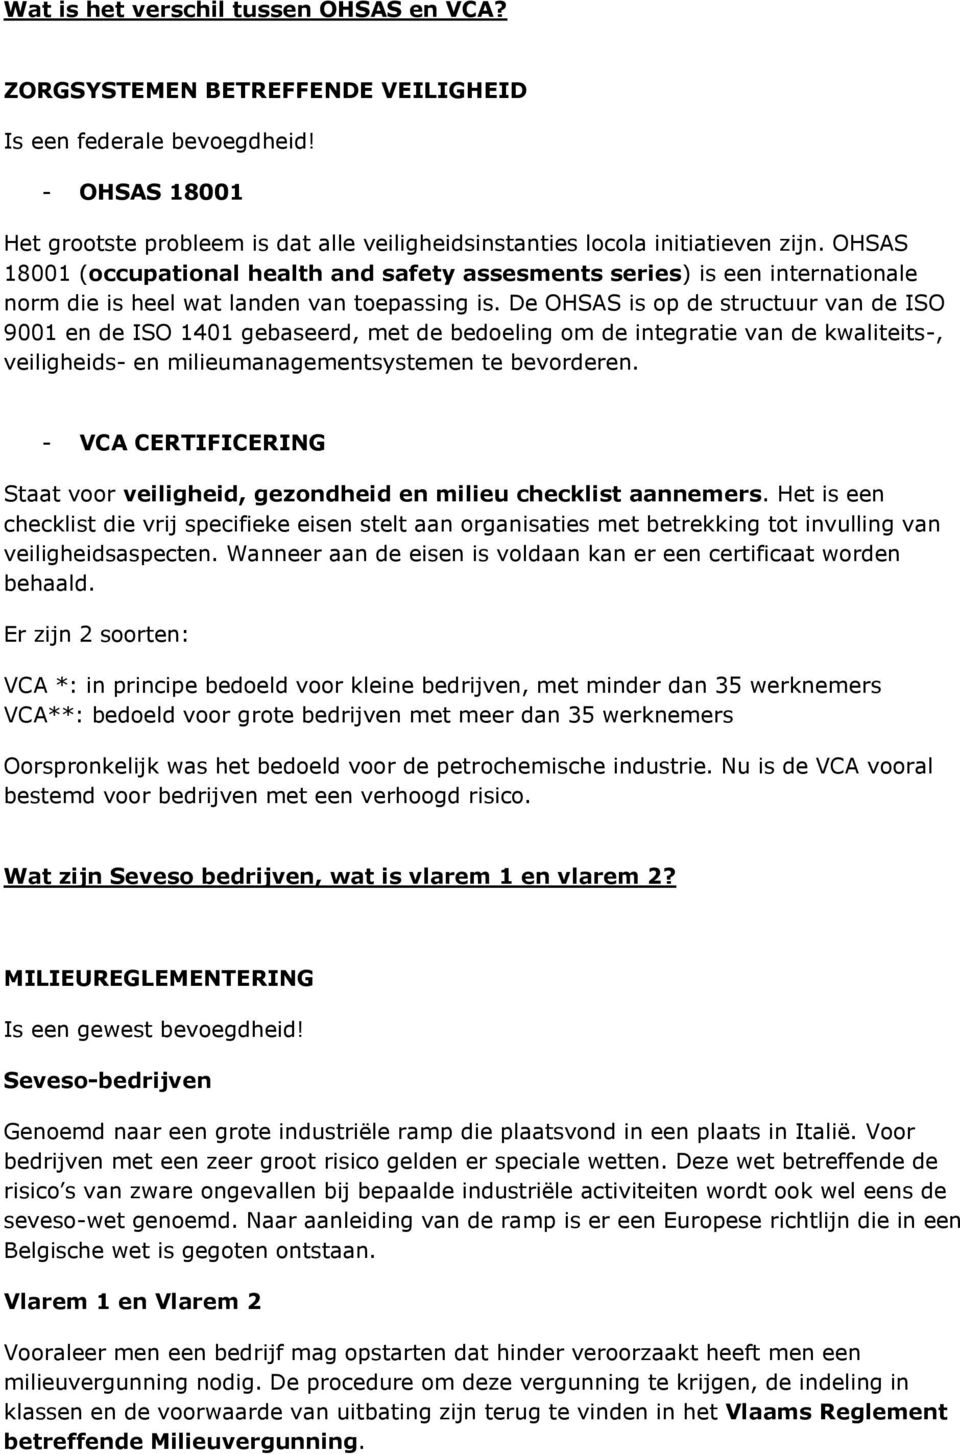 OHSAS 18001 (occupational health and safety assesments series) is een internationale norm die is heel wat landen van toepassing is.